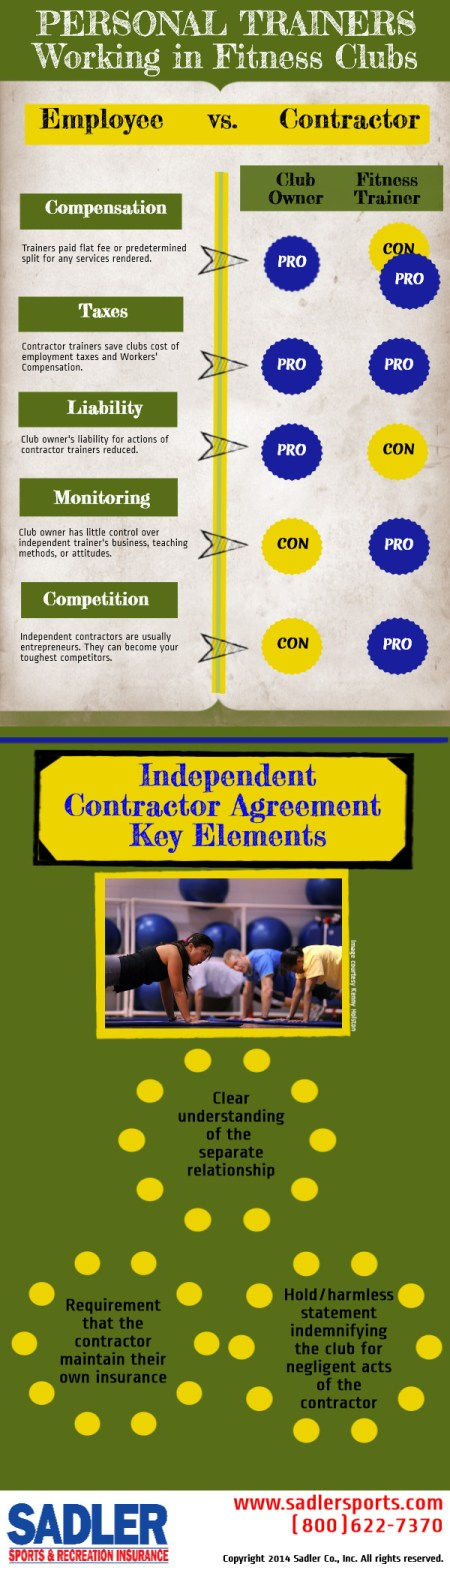 Trainers: Employees or Contractors